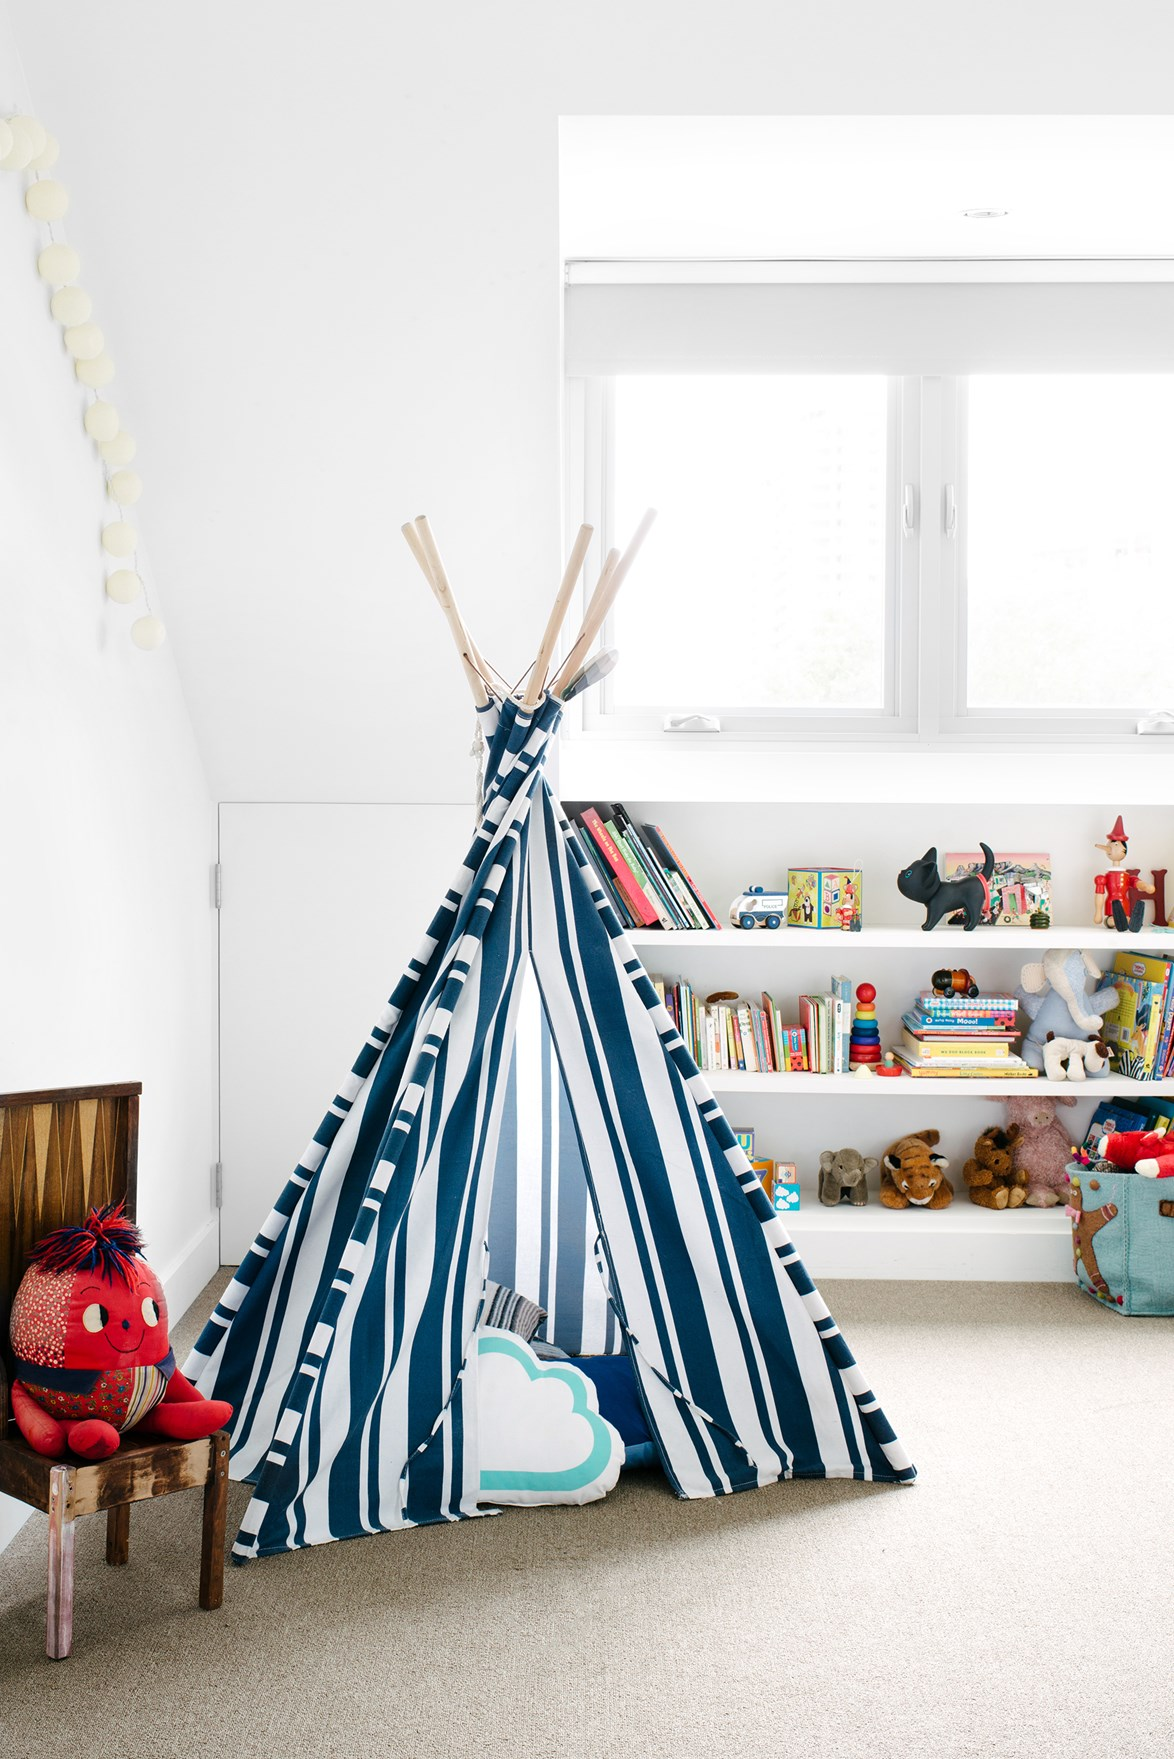 No kids room is complete without a teepee! Perfect for a spot of hide 'n seek or some quiet time. *Photo: Brooke Holm*